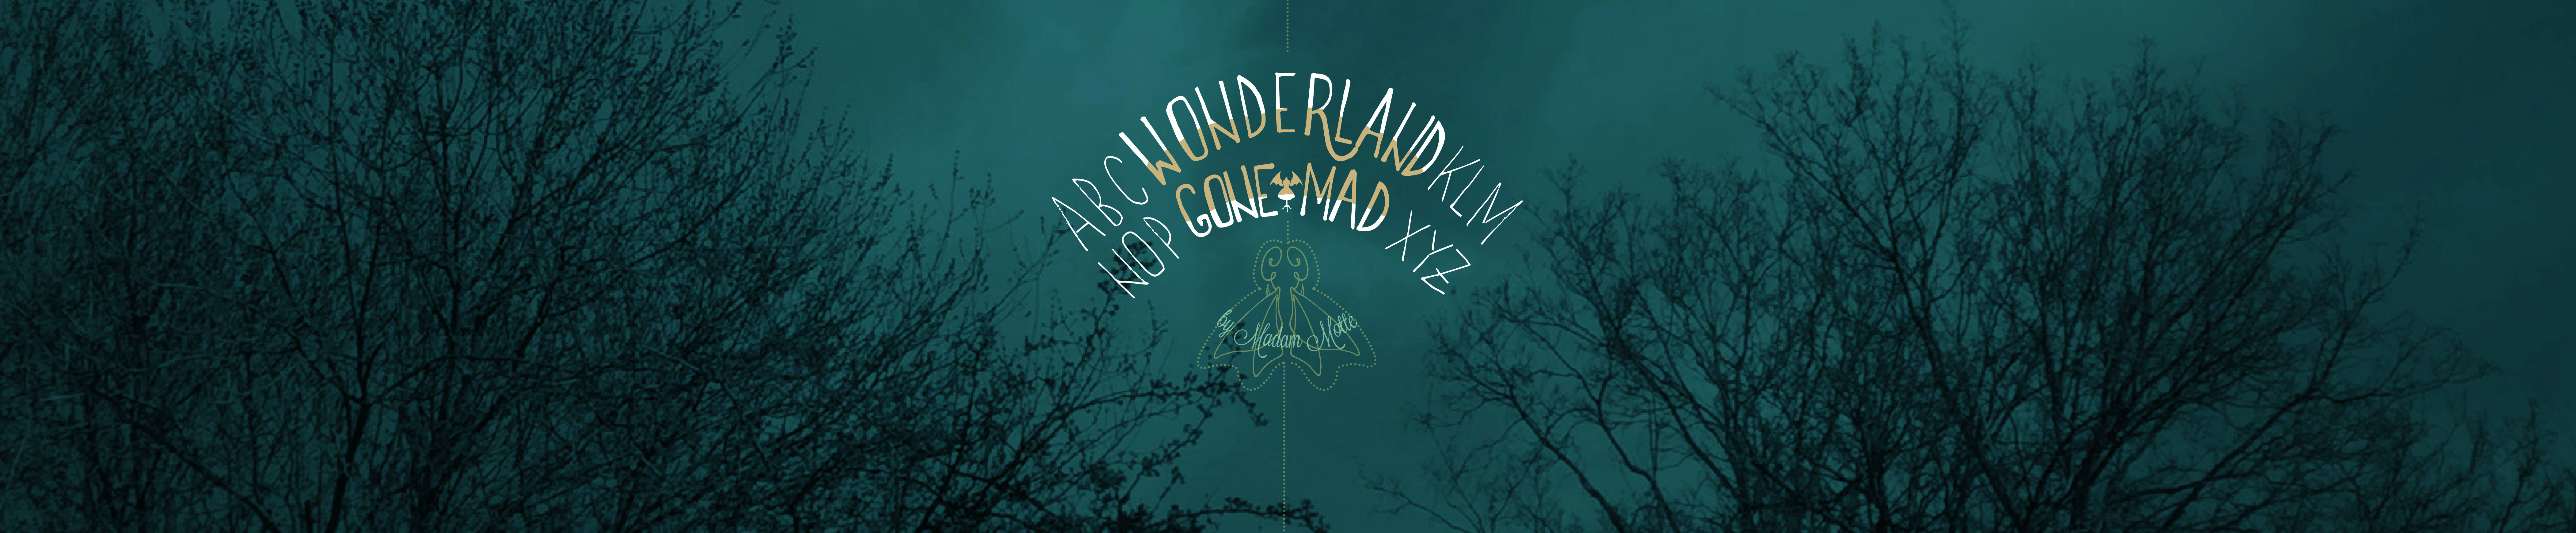 ☽ wonderland gone mad ☾